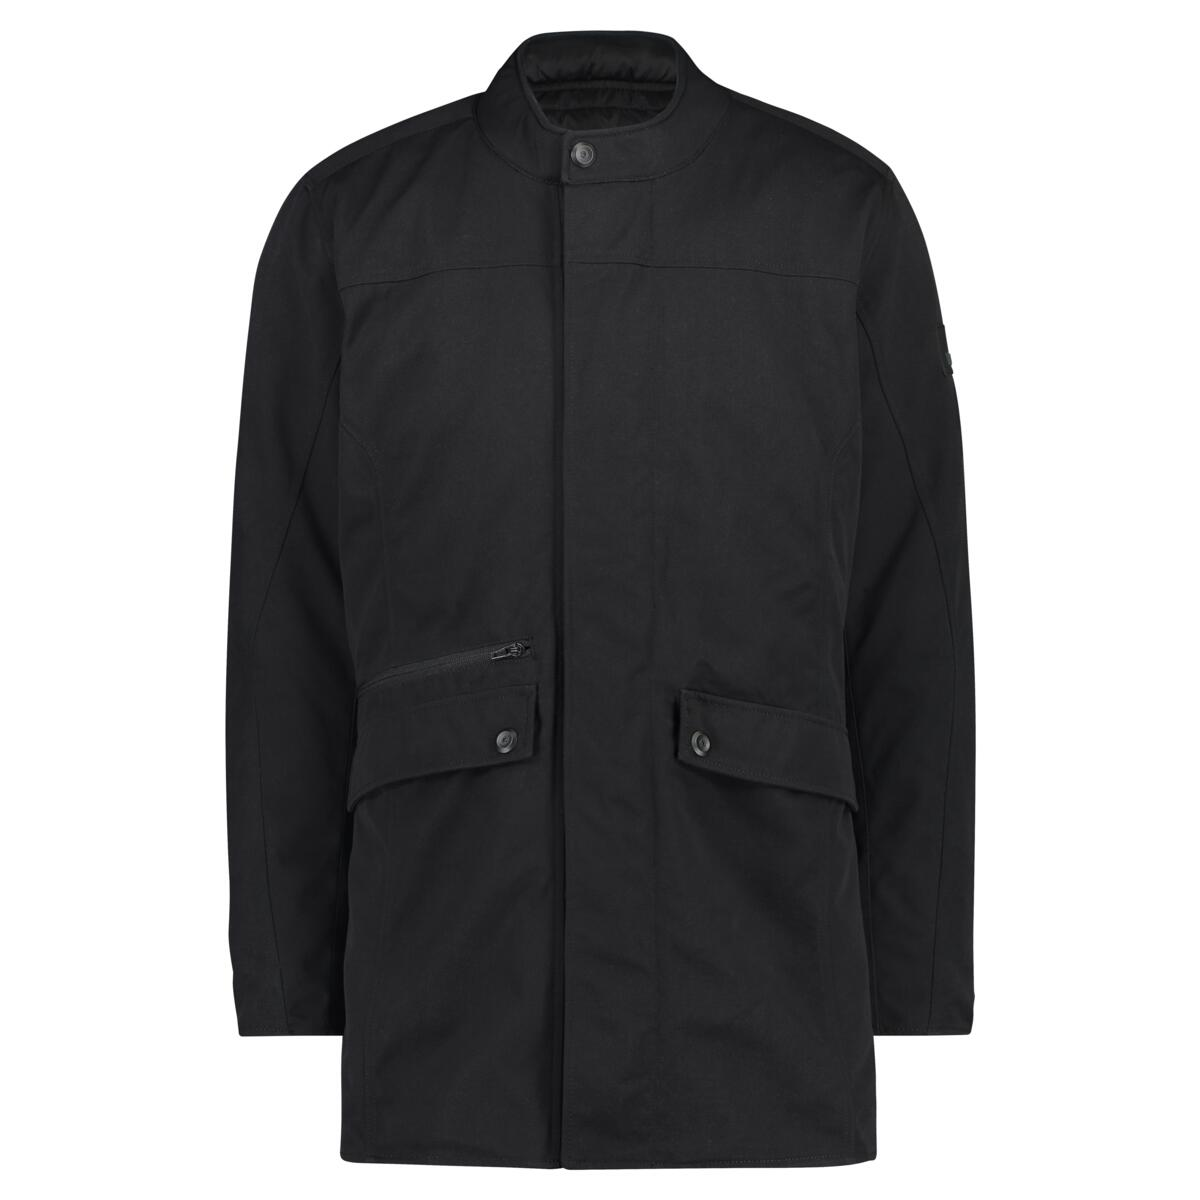 Men's Urban Riding Jacket - Long